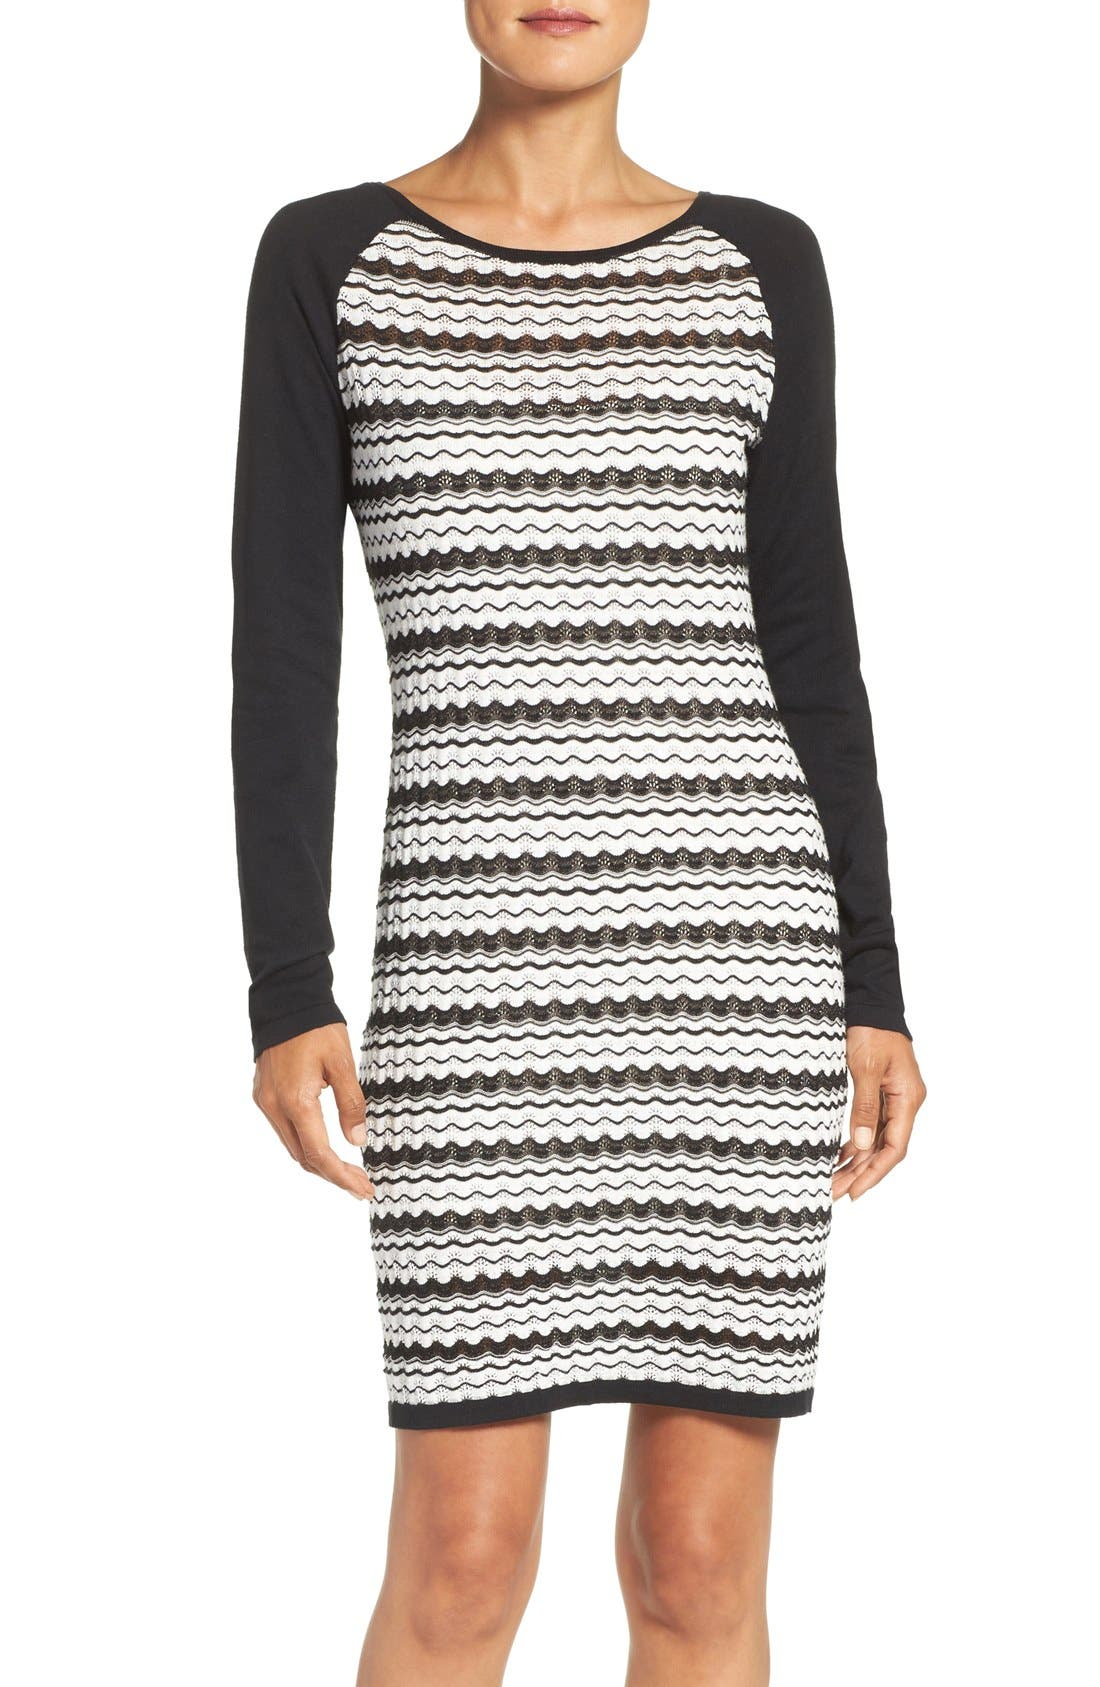 'Zeal' Pointelle Sweater Dress,                             Main thumbnail 1, color,                             001